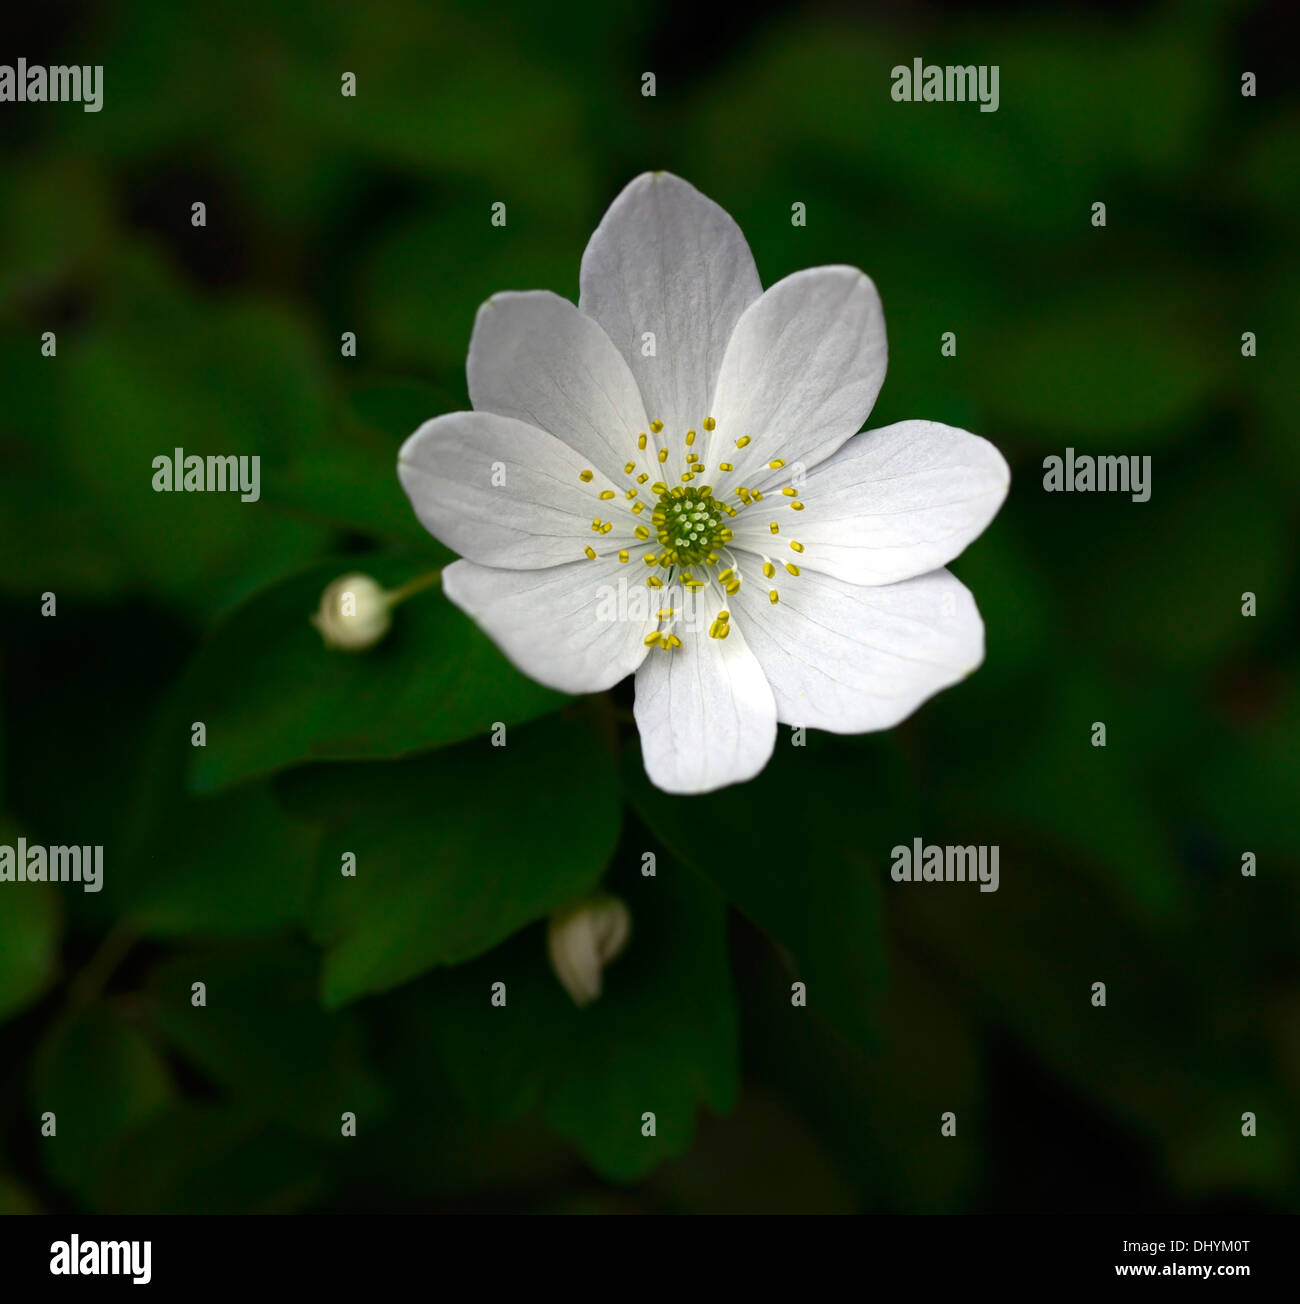 Anemonella thalictroides amelia white flowers perennial shade anemonella thalictroides amelia white flowers perennial shade shaded shady wood woodland plant flowering flower stock dhlflorist Image collections